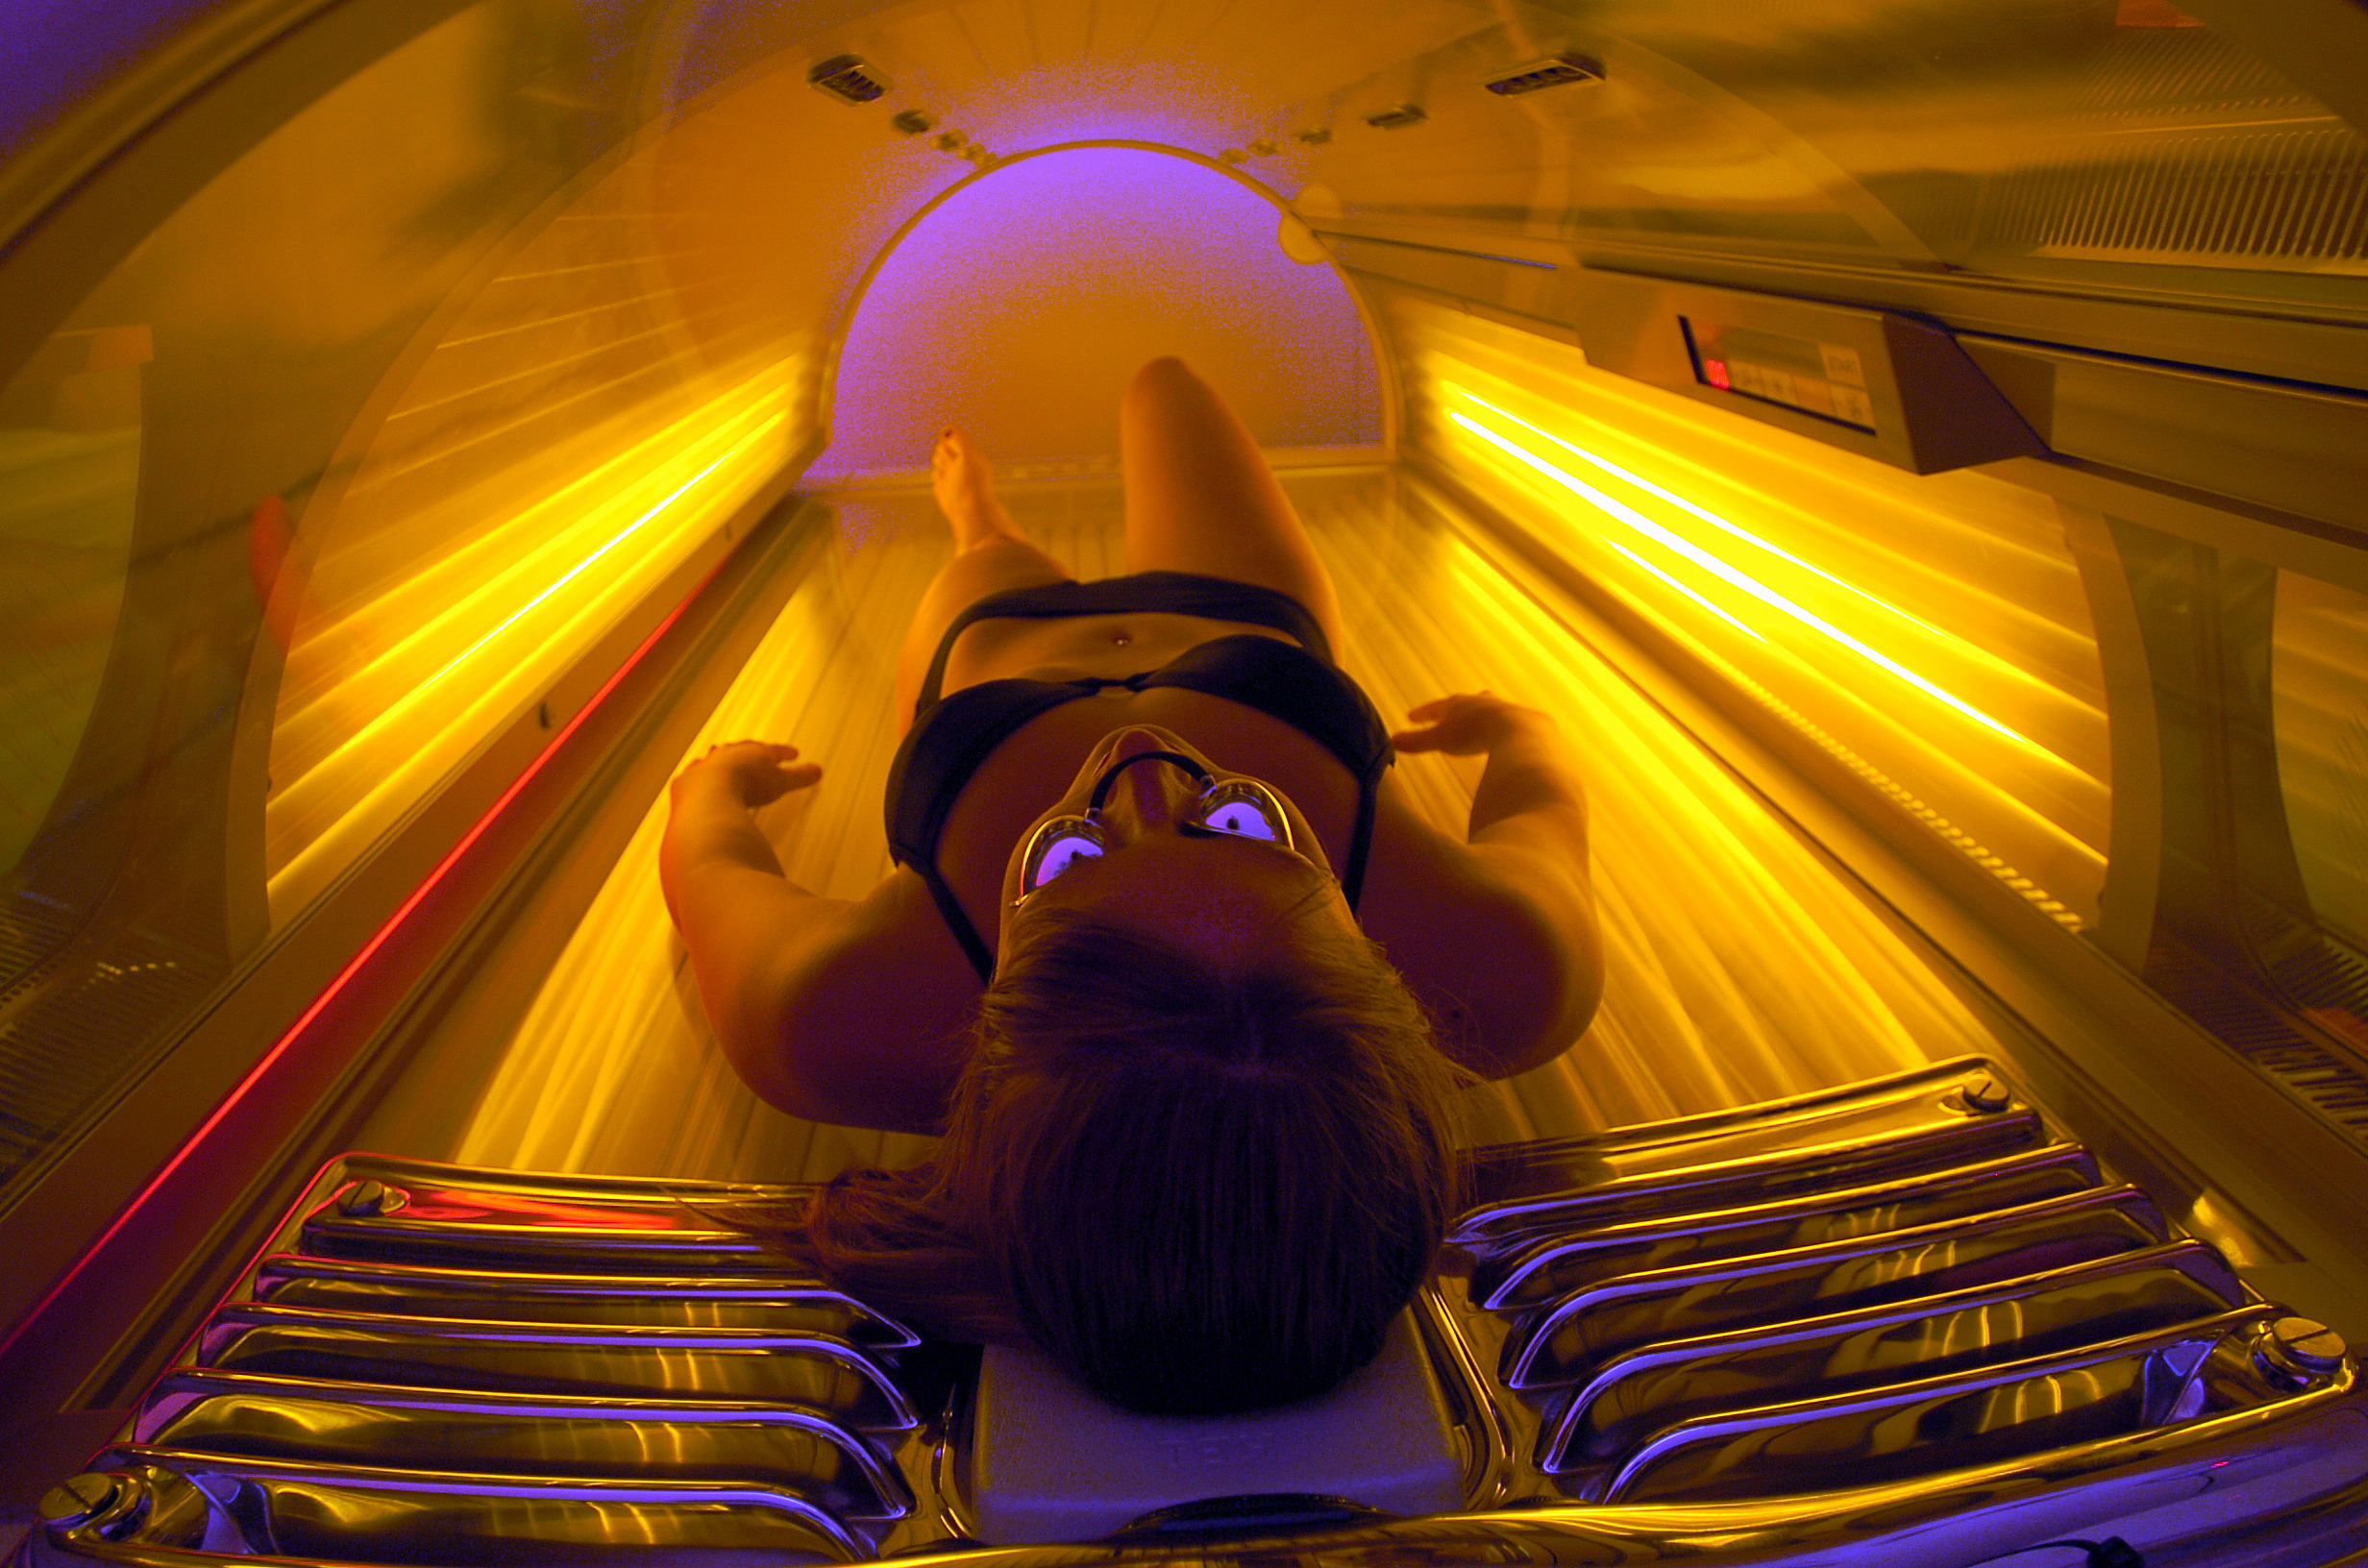 Surgeon General issues warning about tanning | USA...